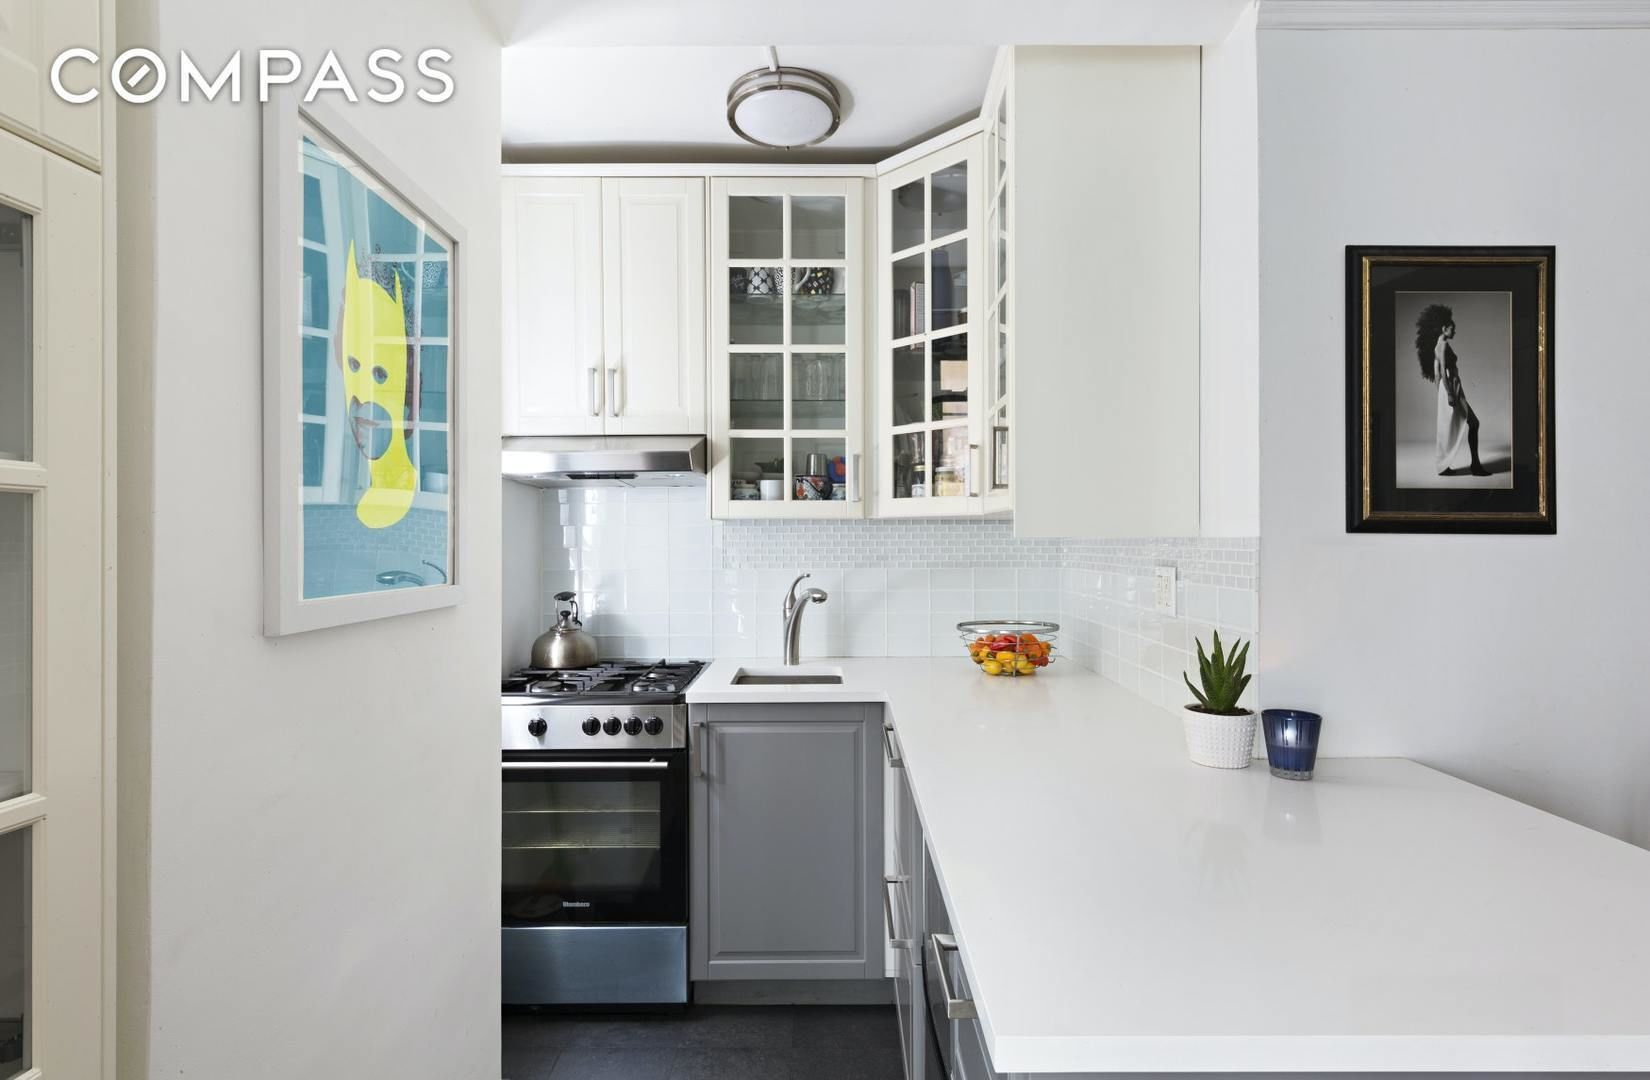 Apartment for sale at 200 East 16th Street, Apt 3-C